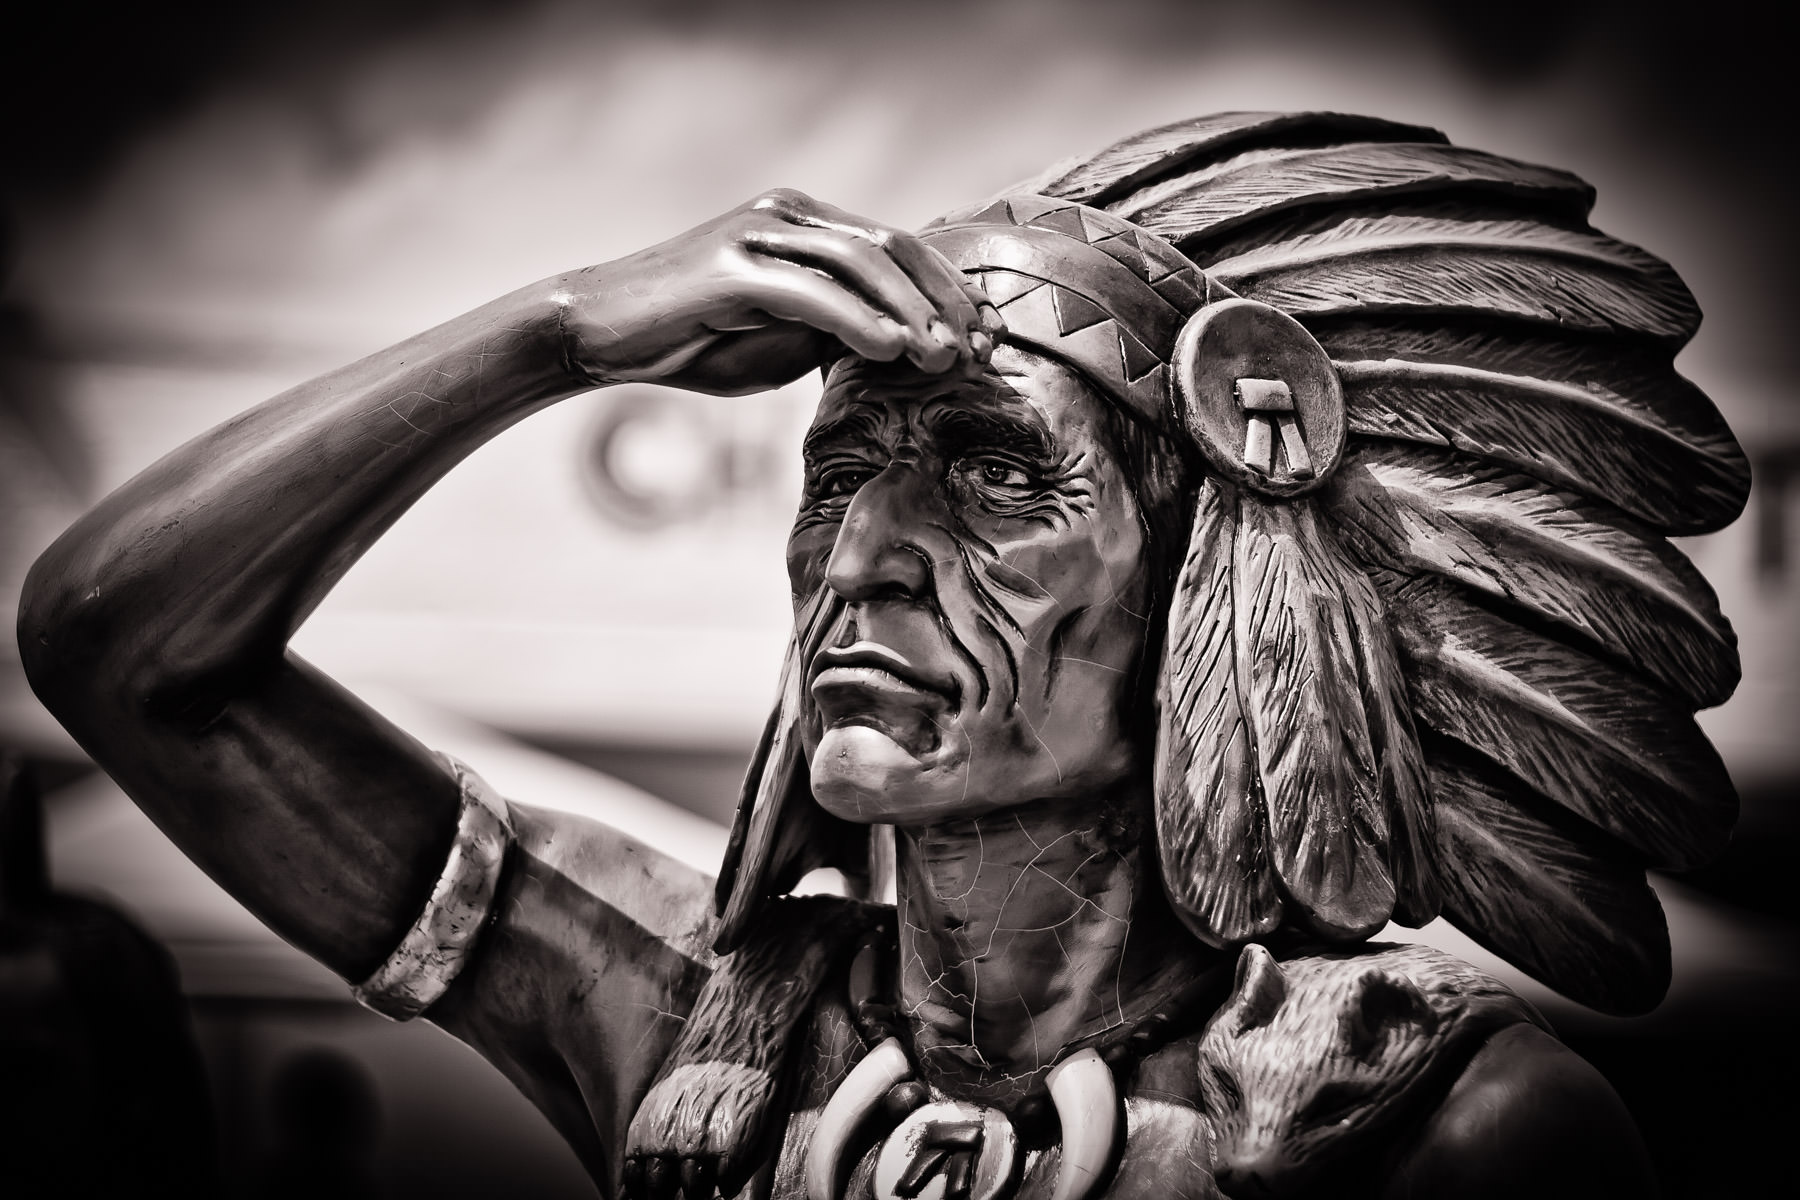 A statue of an American Indian outside of a botanica in Oak Cliff, Dallas.